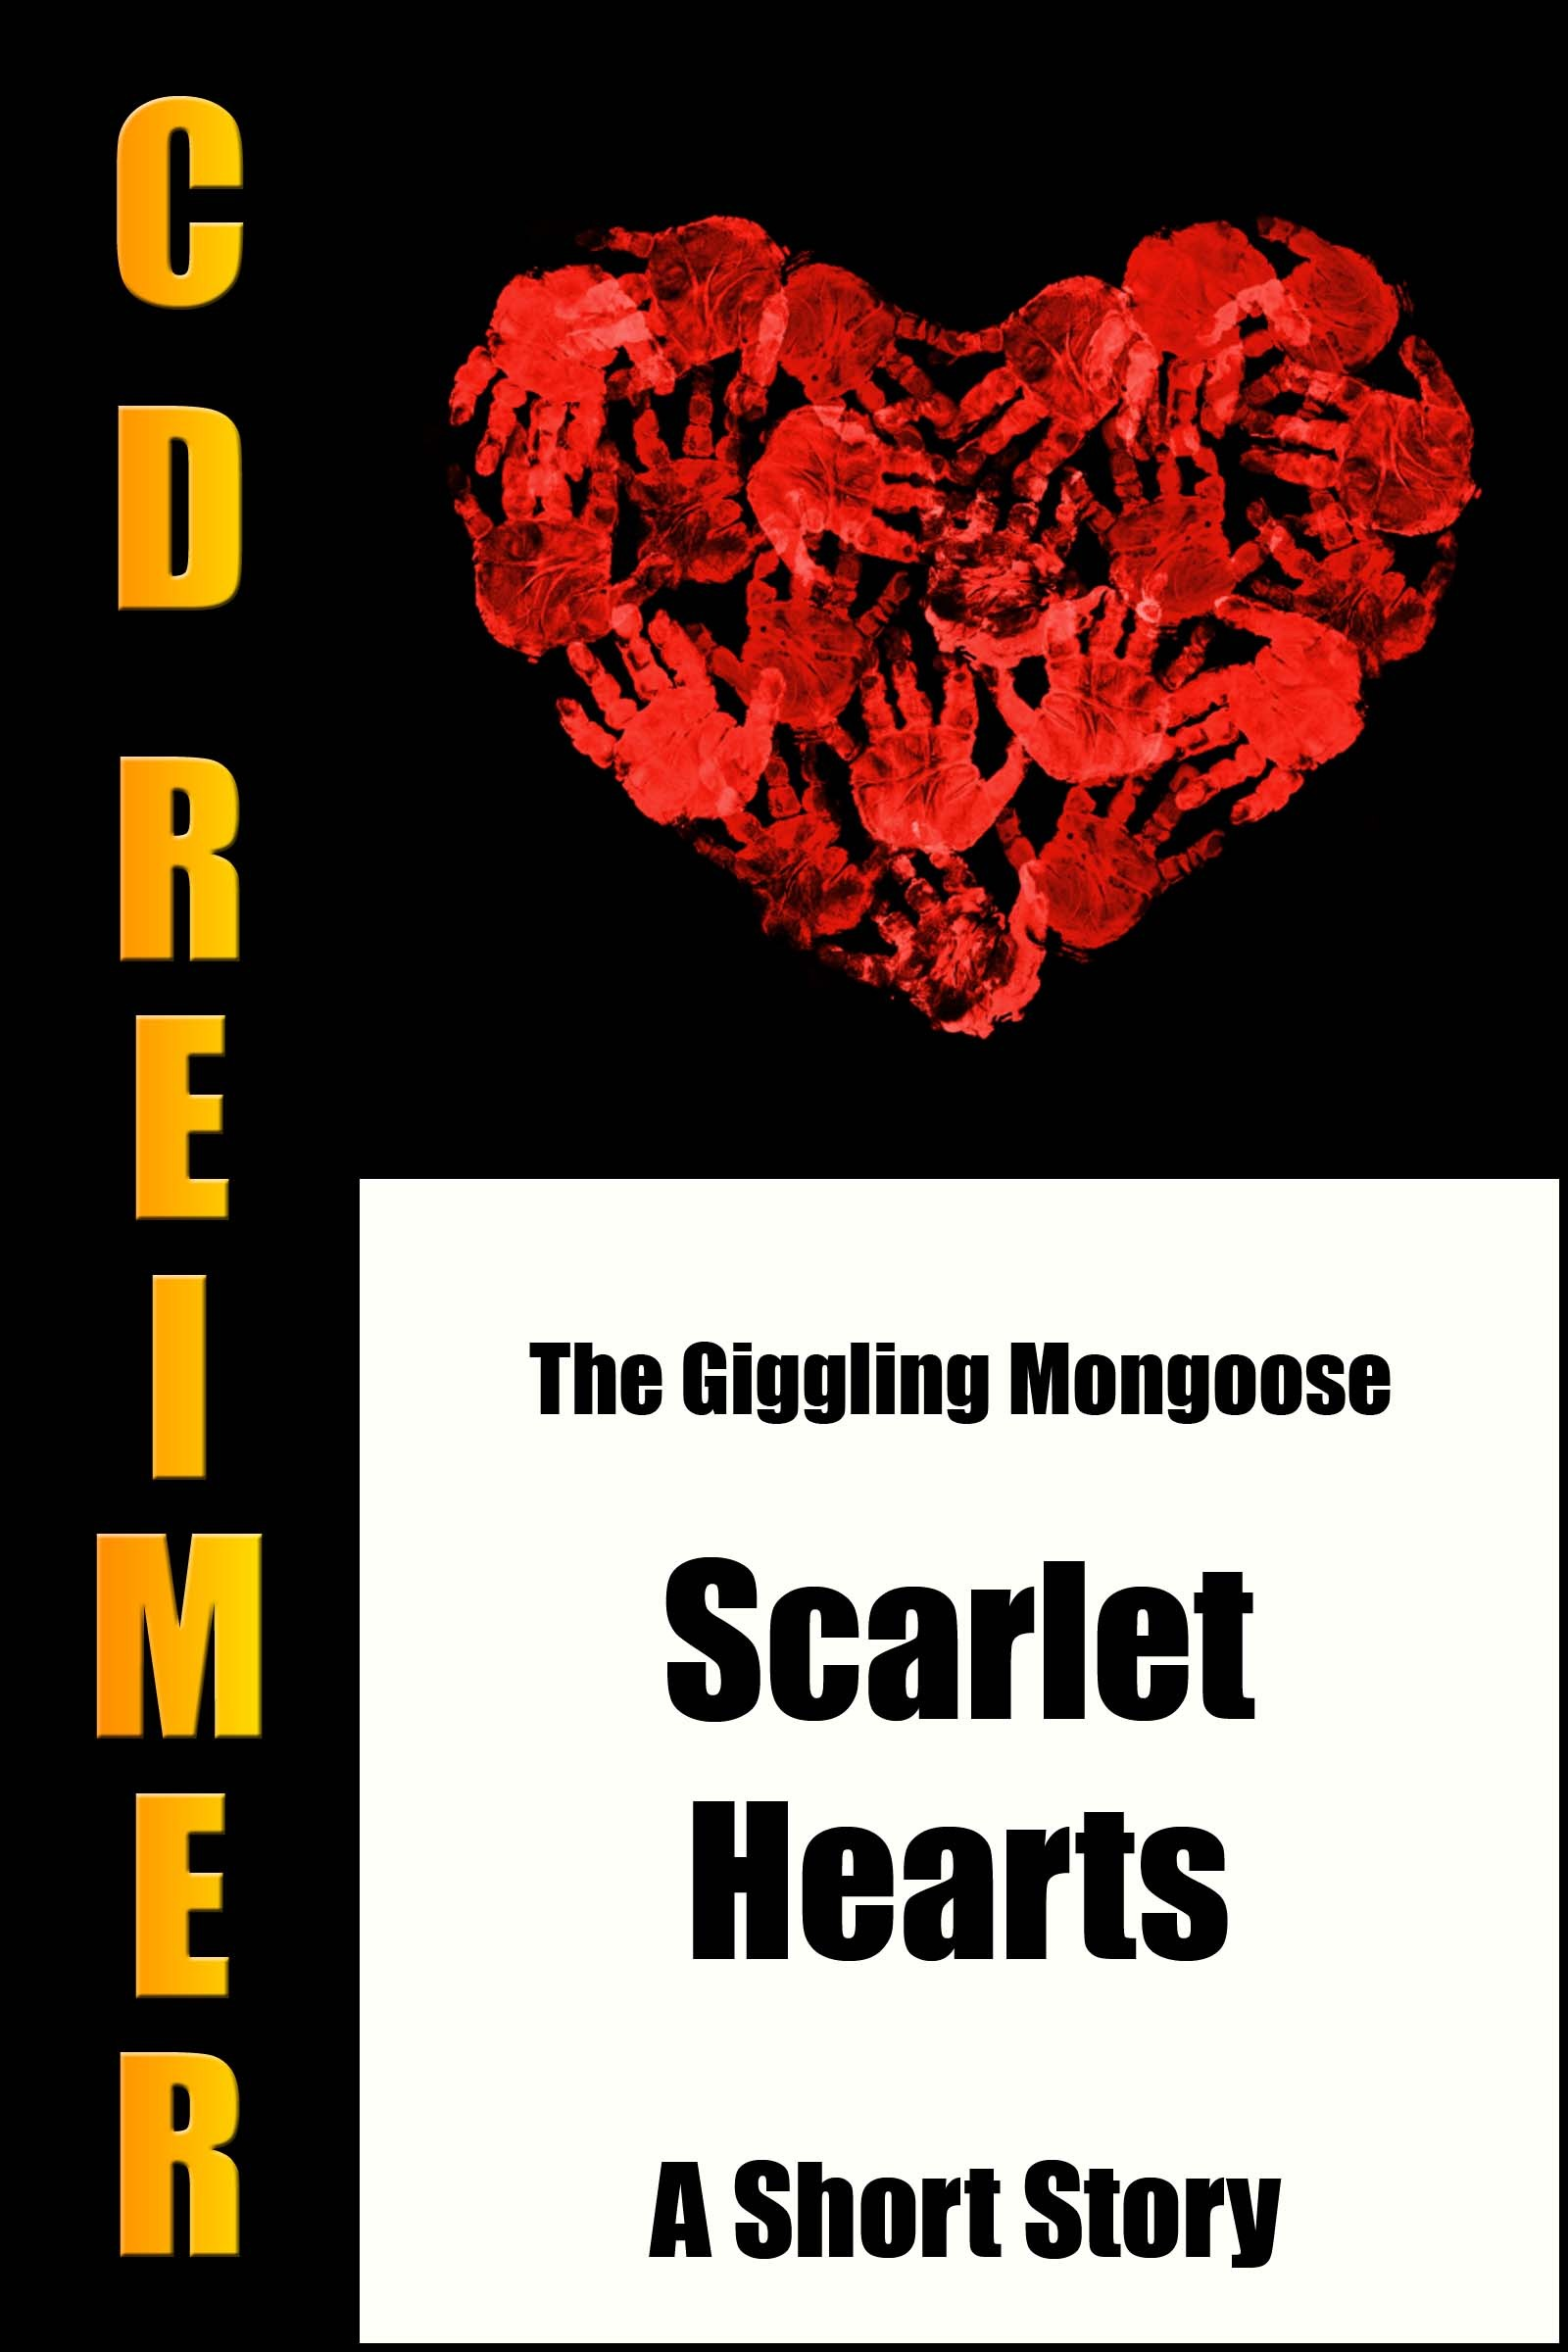 The Giggling Mongoose: Scarlet Hearts